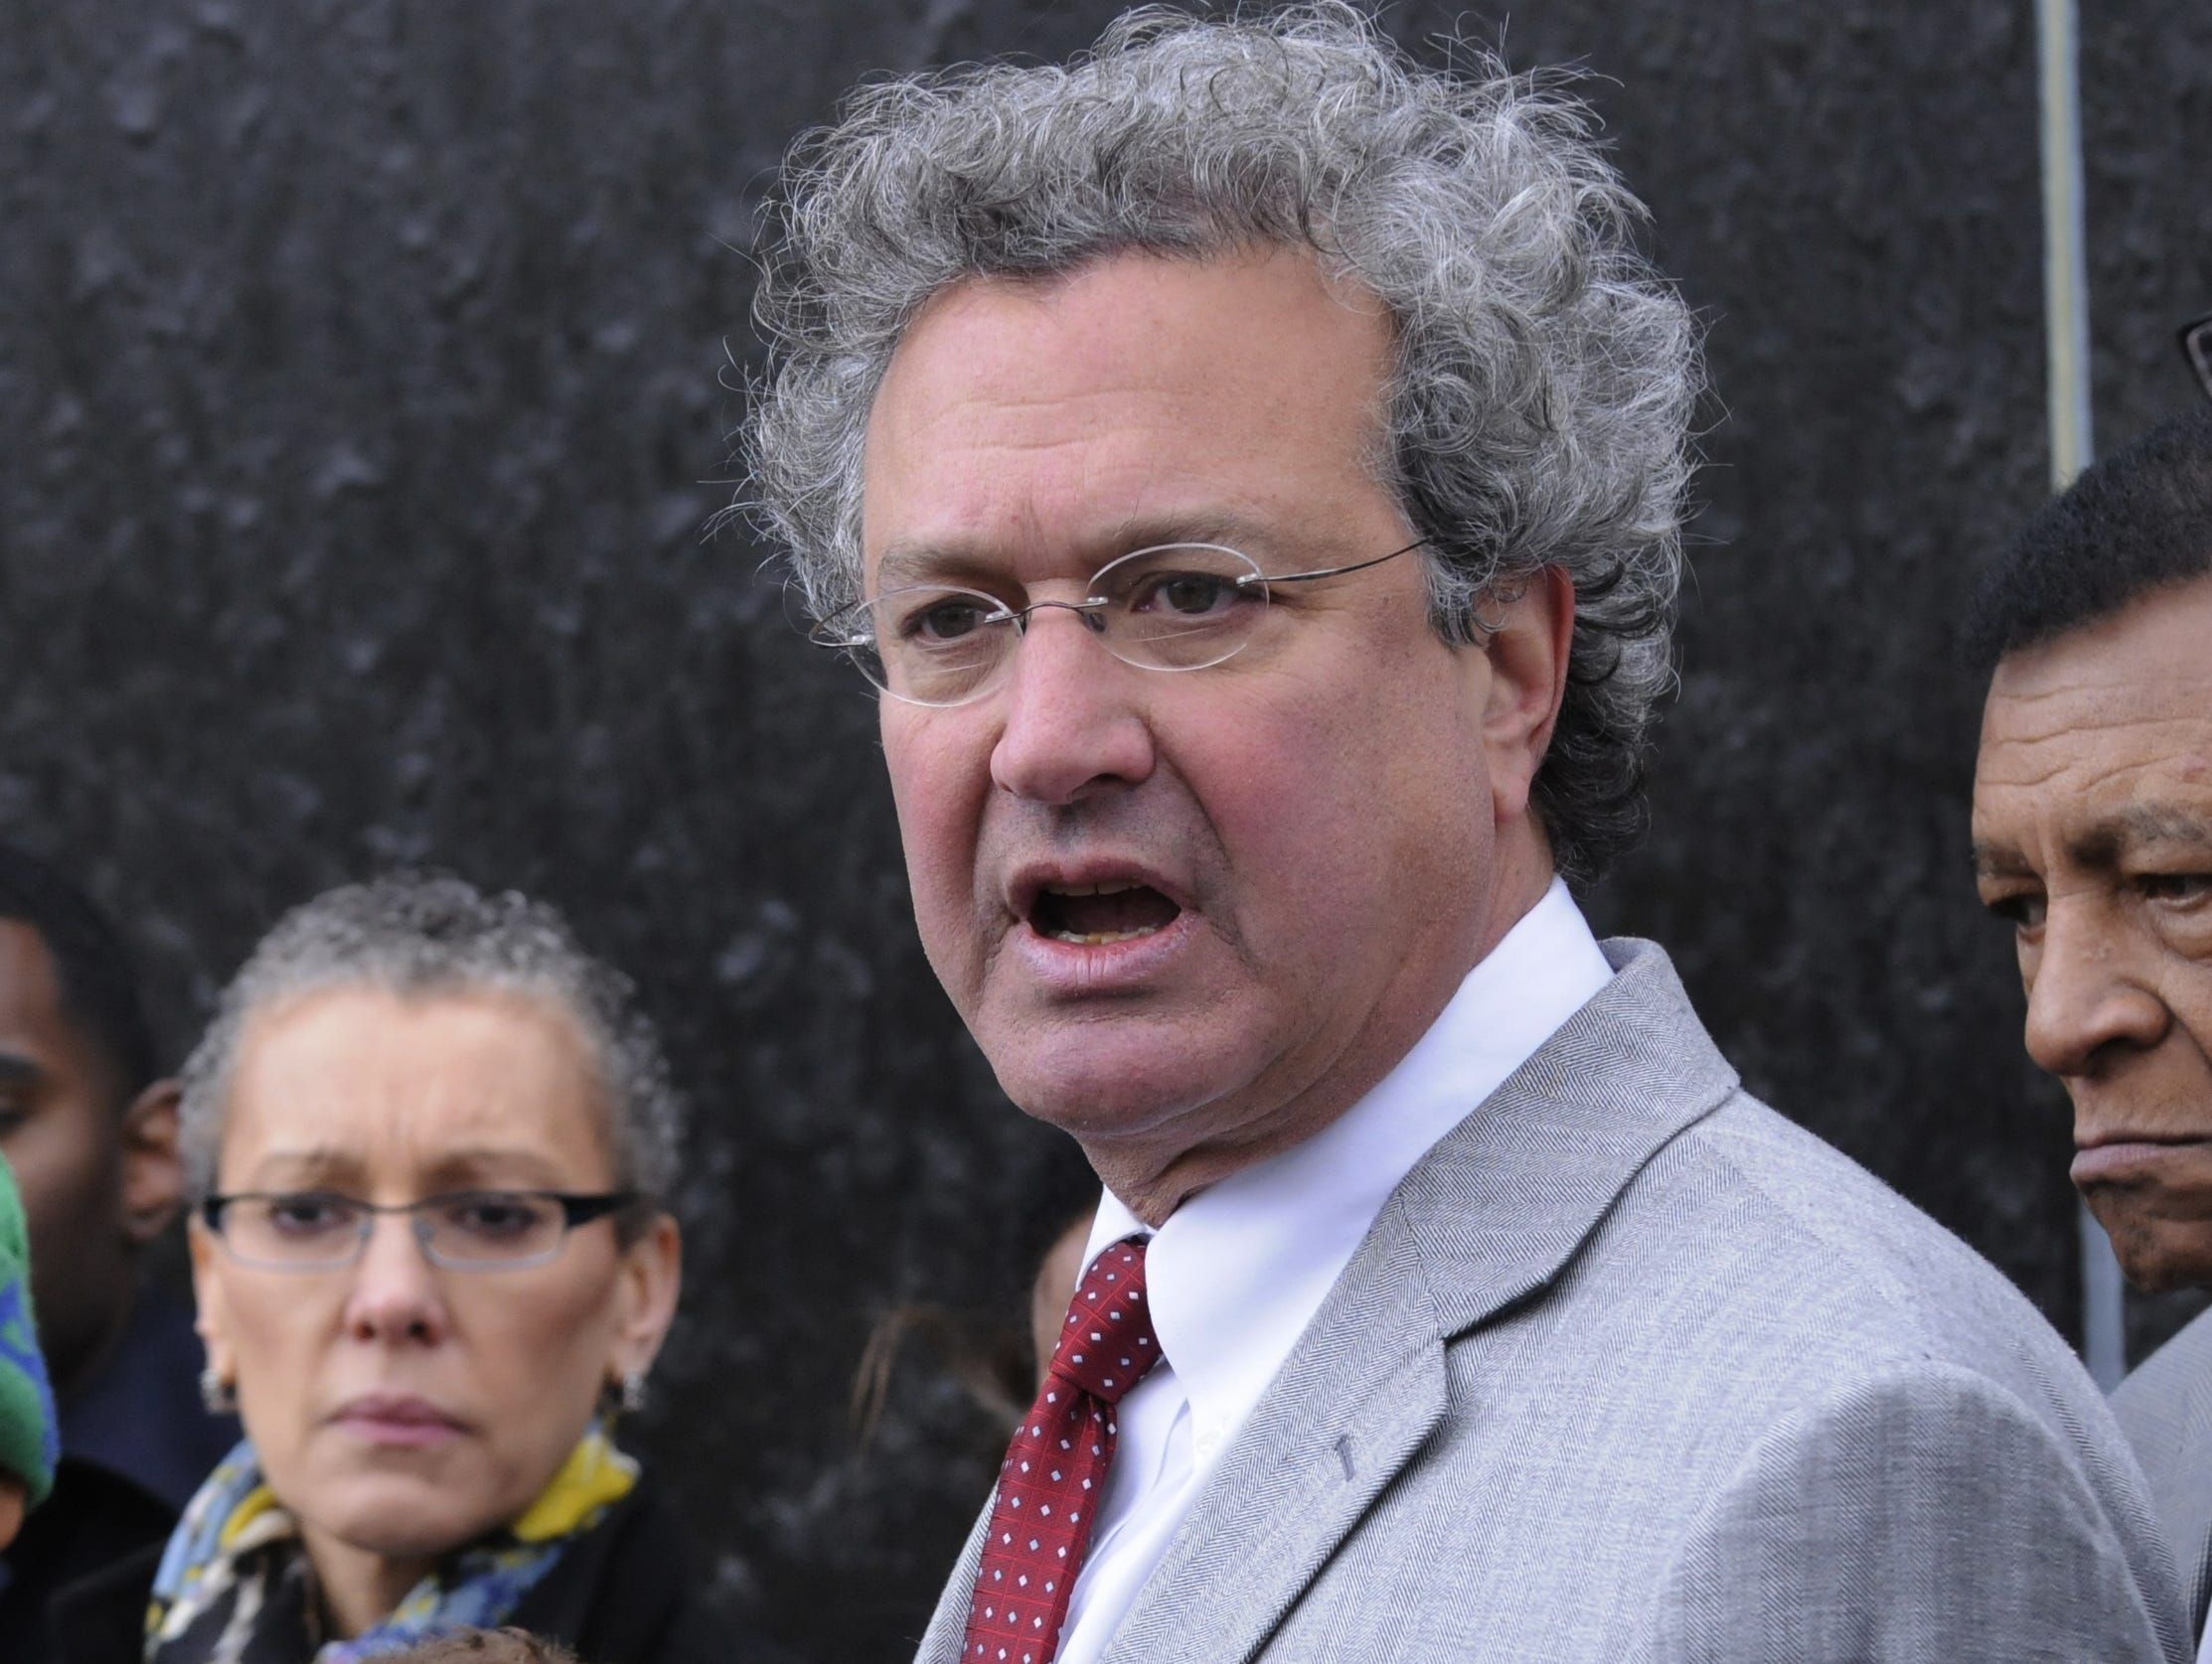 Richard Cohen, President of the Southern Poverty Law Center, testified for birthright citizenship. Richard Cohen, President of the Southern Poverty Law Center, speaks as members of the Faith and Politics 13th Congressional Civil Rights Pilgrimage gather around the Civil Rights Monument in Montgomery, Ala., on Saturday, March 2, 2013. (Montgomery Advertiser/Lloyd Gallman)